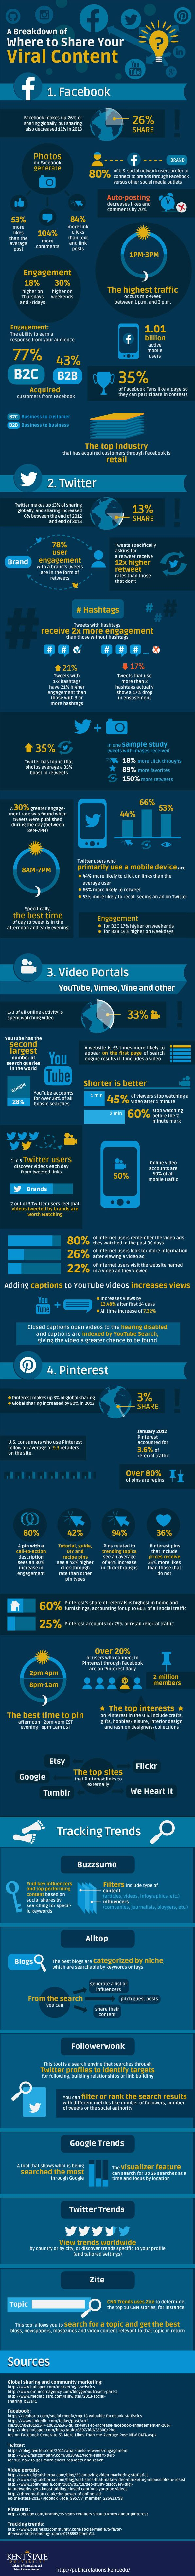 Using Social Media For Content Distribution: Which Network Is Right For Your Business? infographic